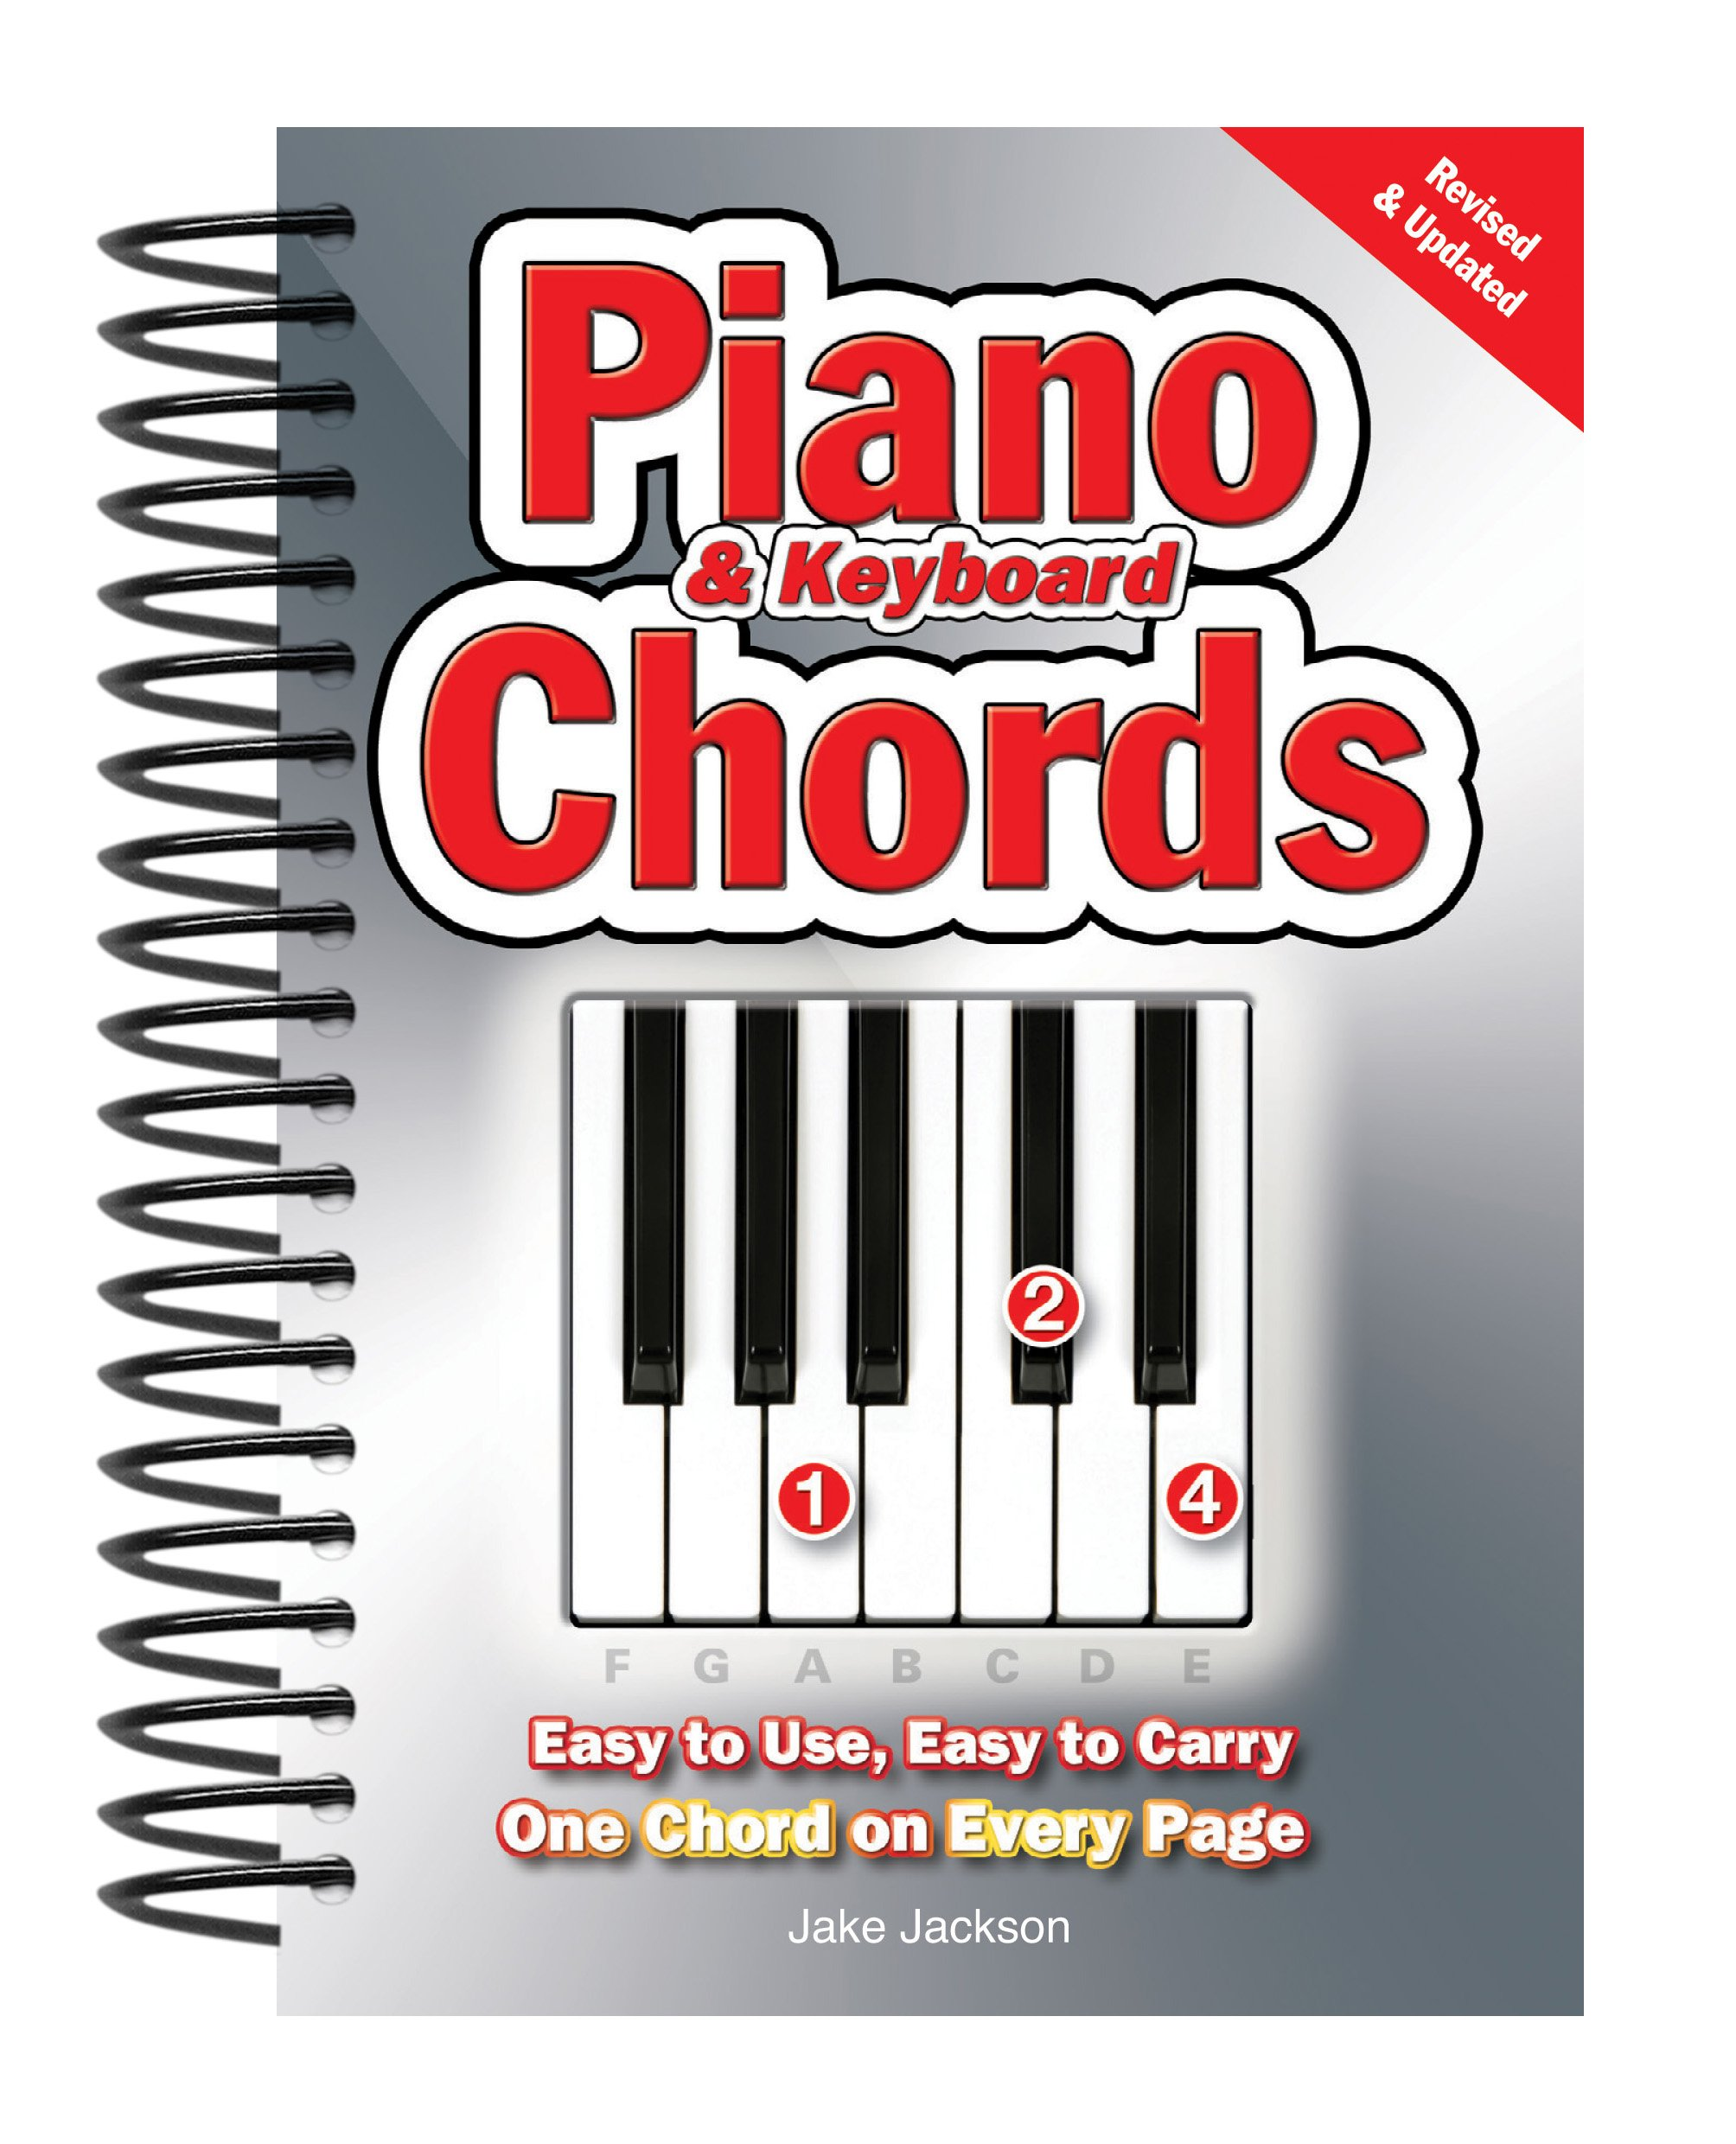 Piano keyboard chords easy to use easy to carry one chord on piano keyboard chords easy to use easy to carry one chord on every page jake jackson 9780857752642 amazon books hexwebz Image collections